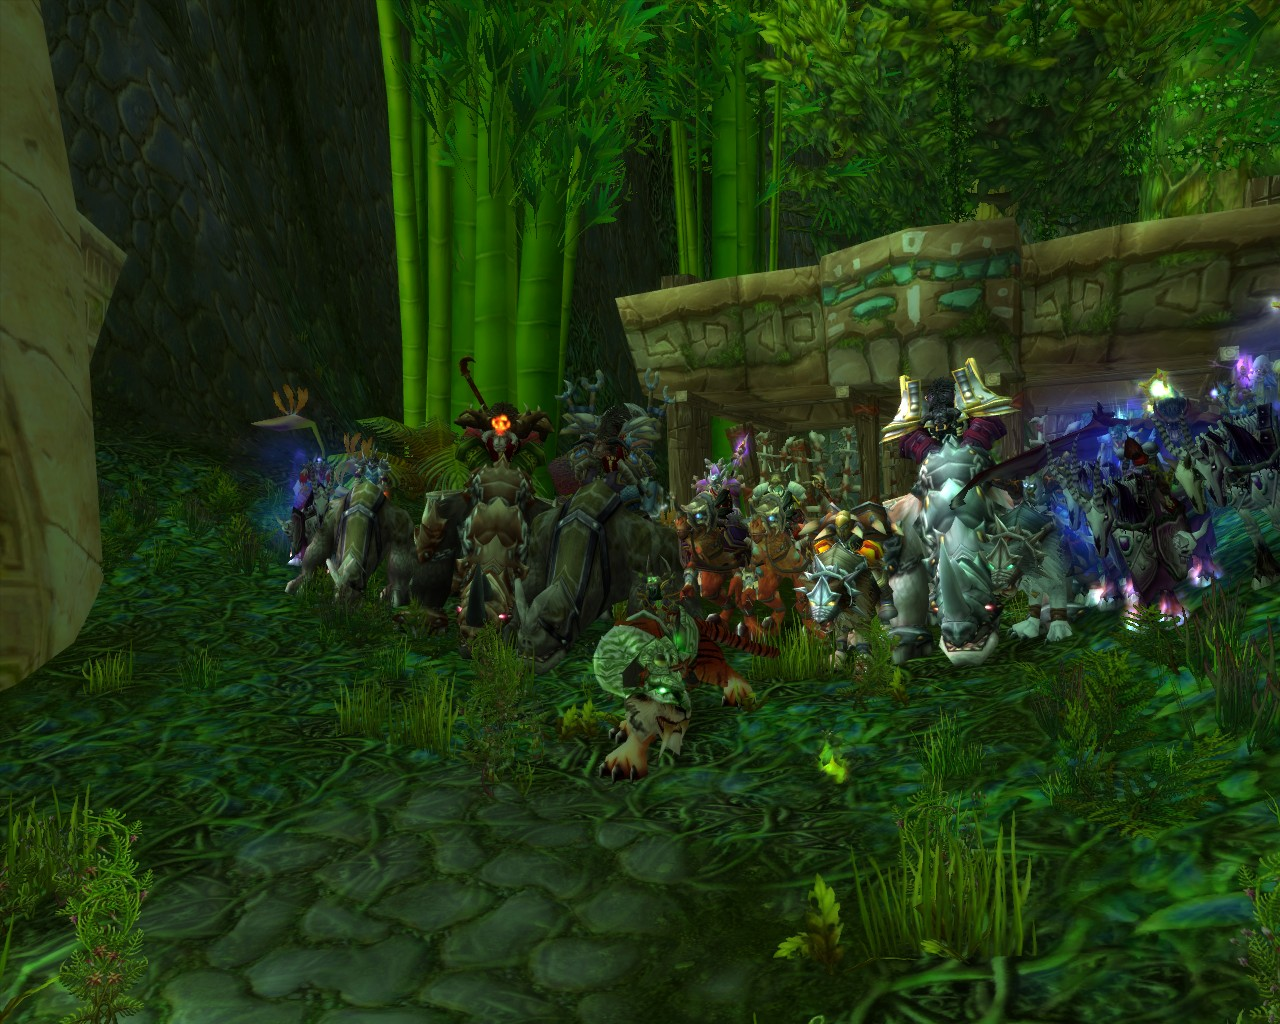 Old screenshot from 2006 when I recieved the Swift Zulian Tiger with my guild from High Priest Thekal in Zul'Gurub!